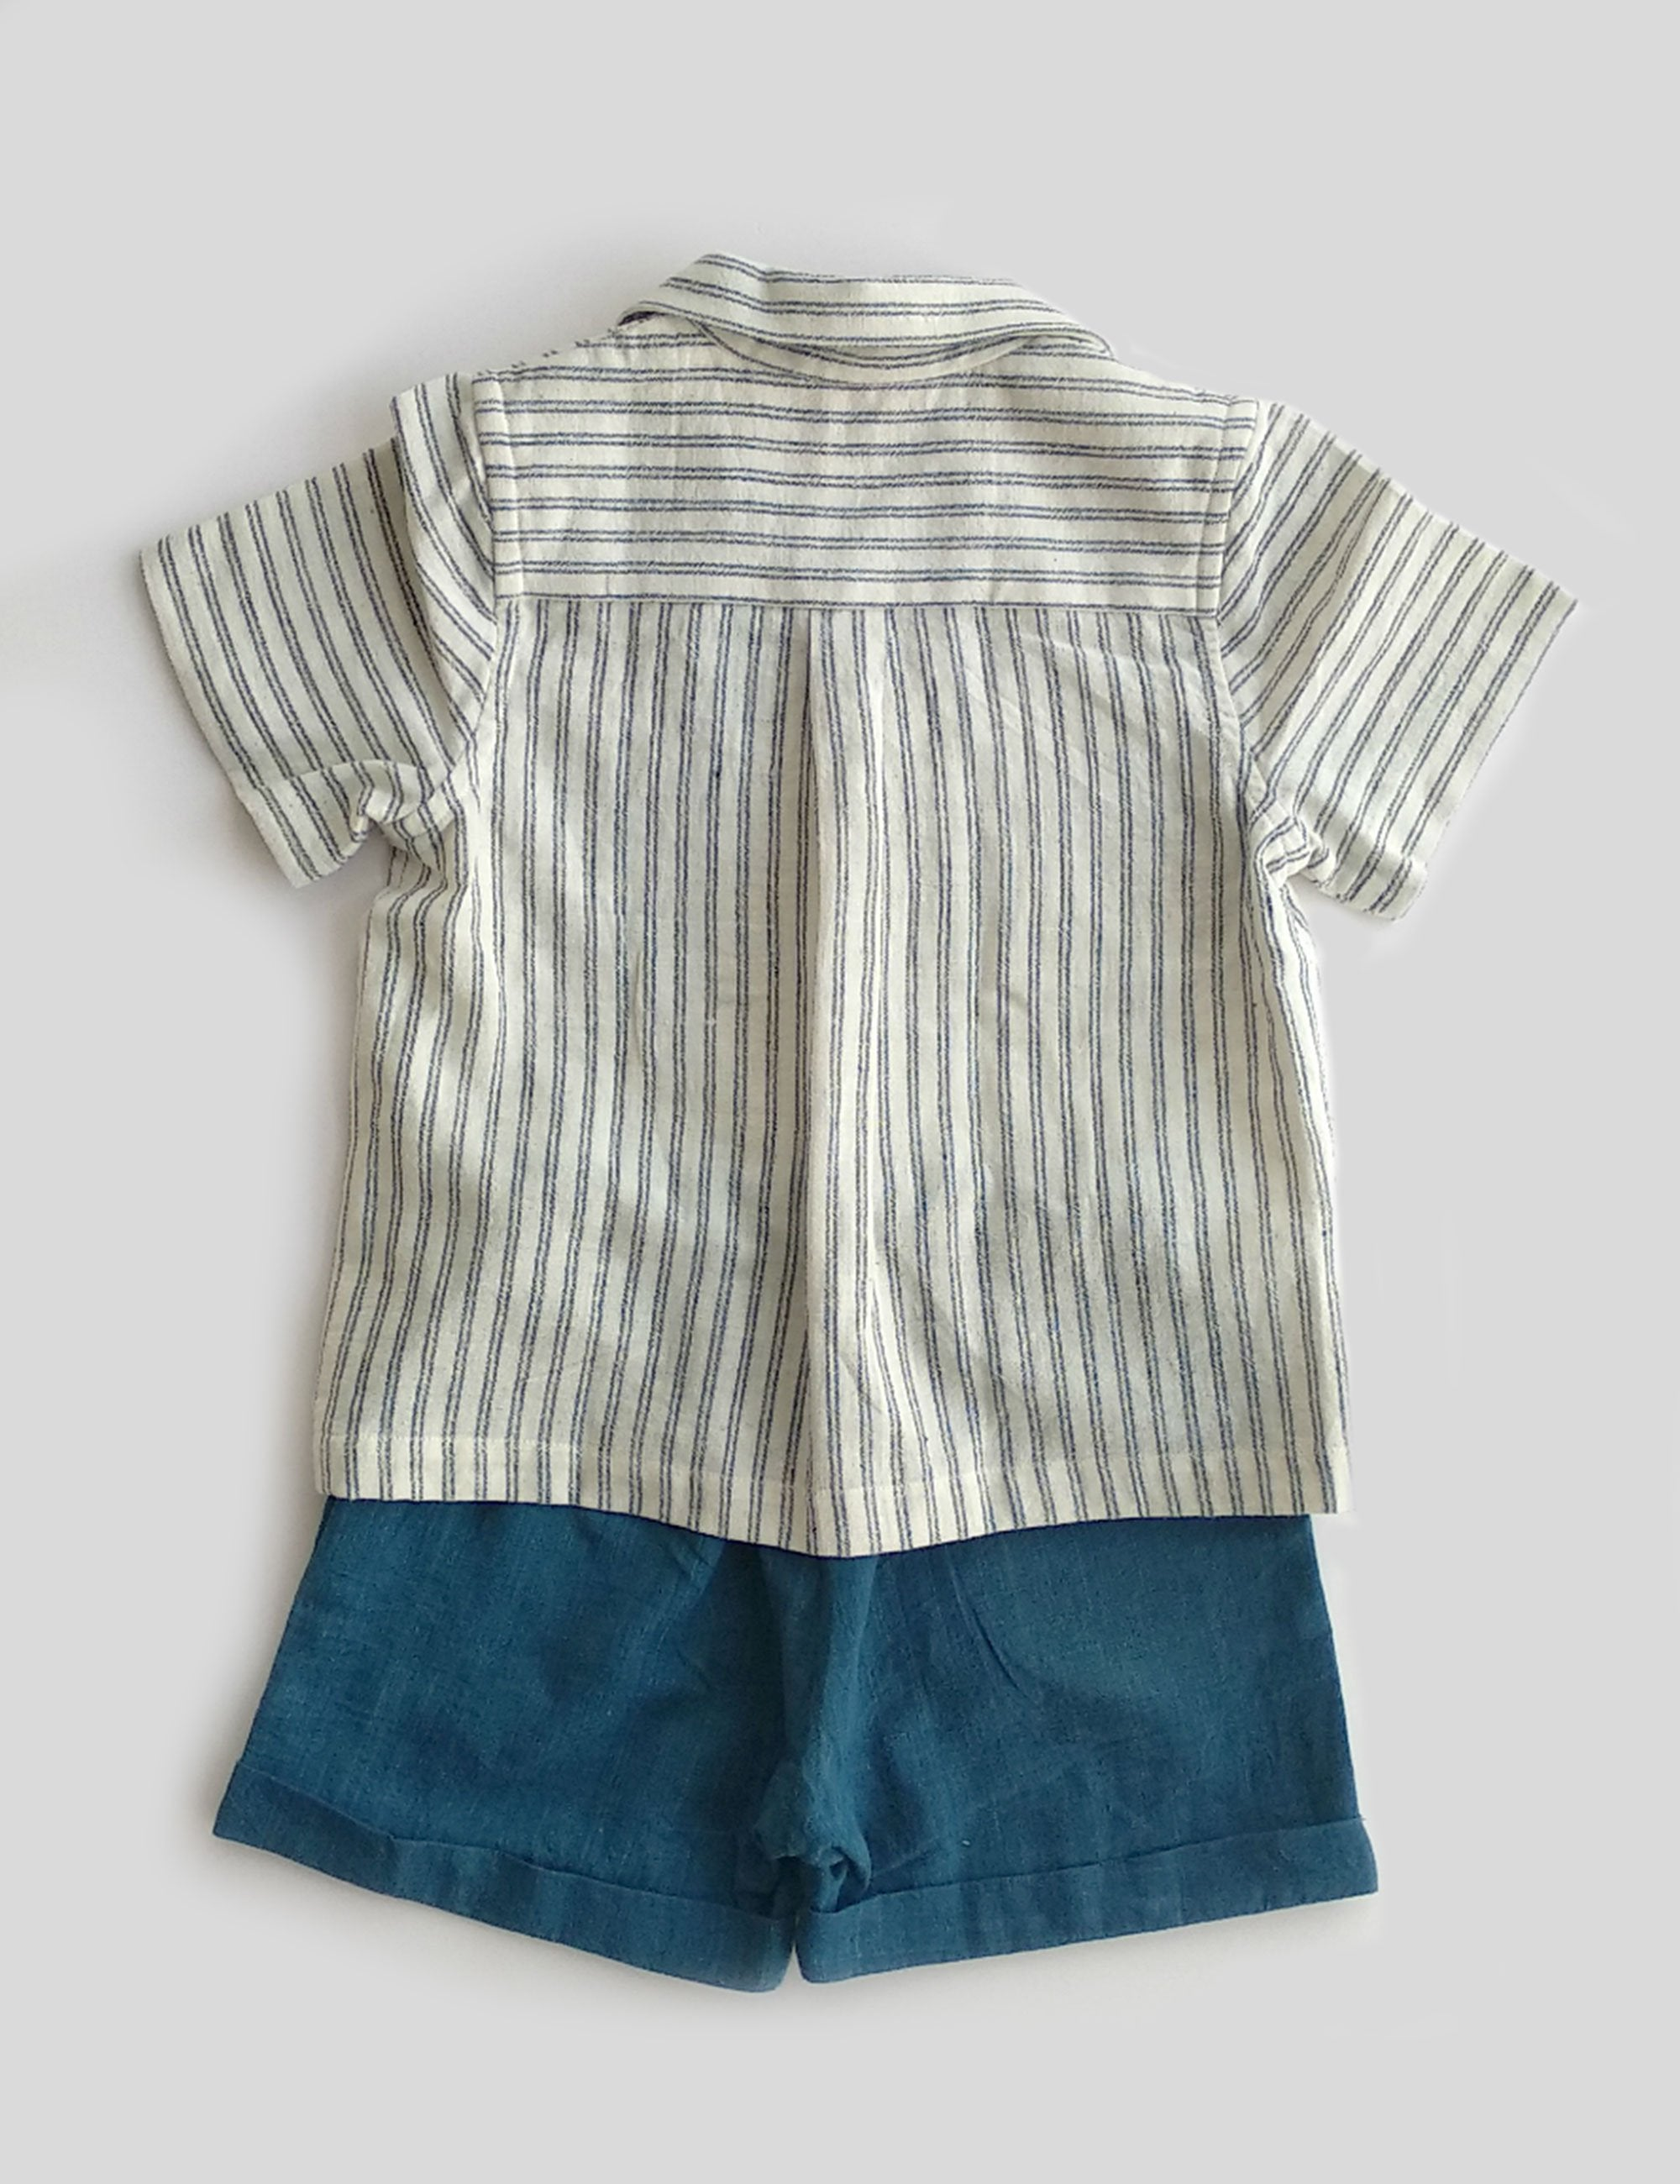 Convertible Collar Shirt Set with Half Sleeves in Stripped Pattern with Indigo Checks Shorts for Boys